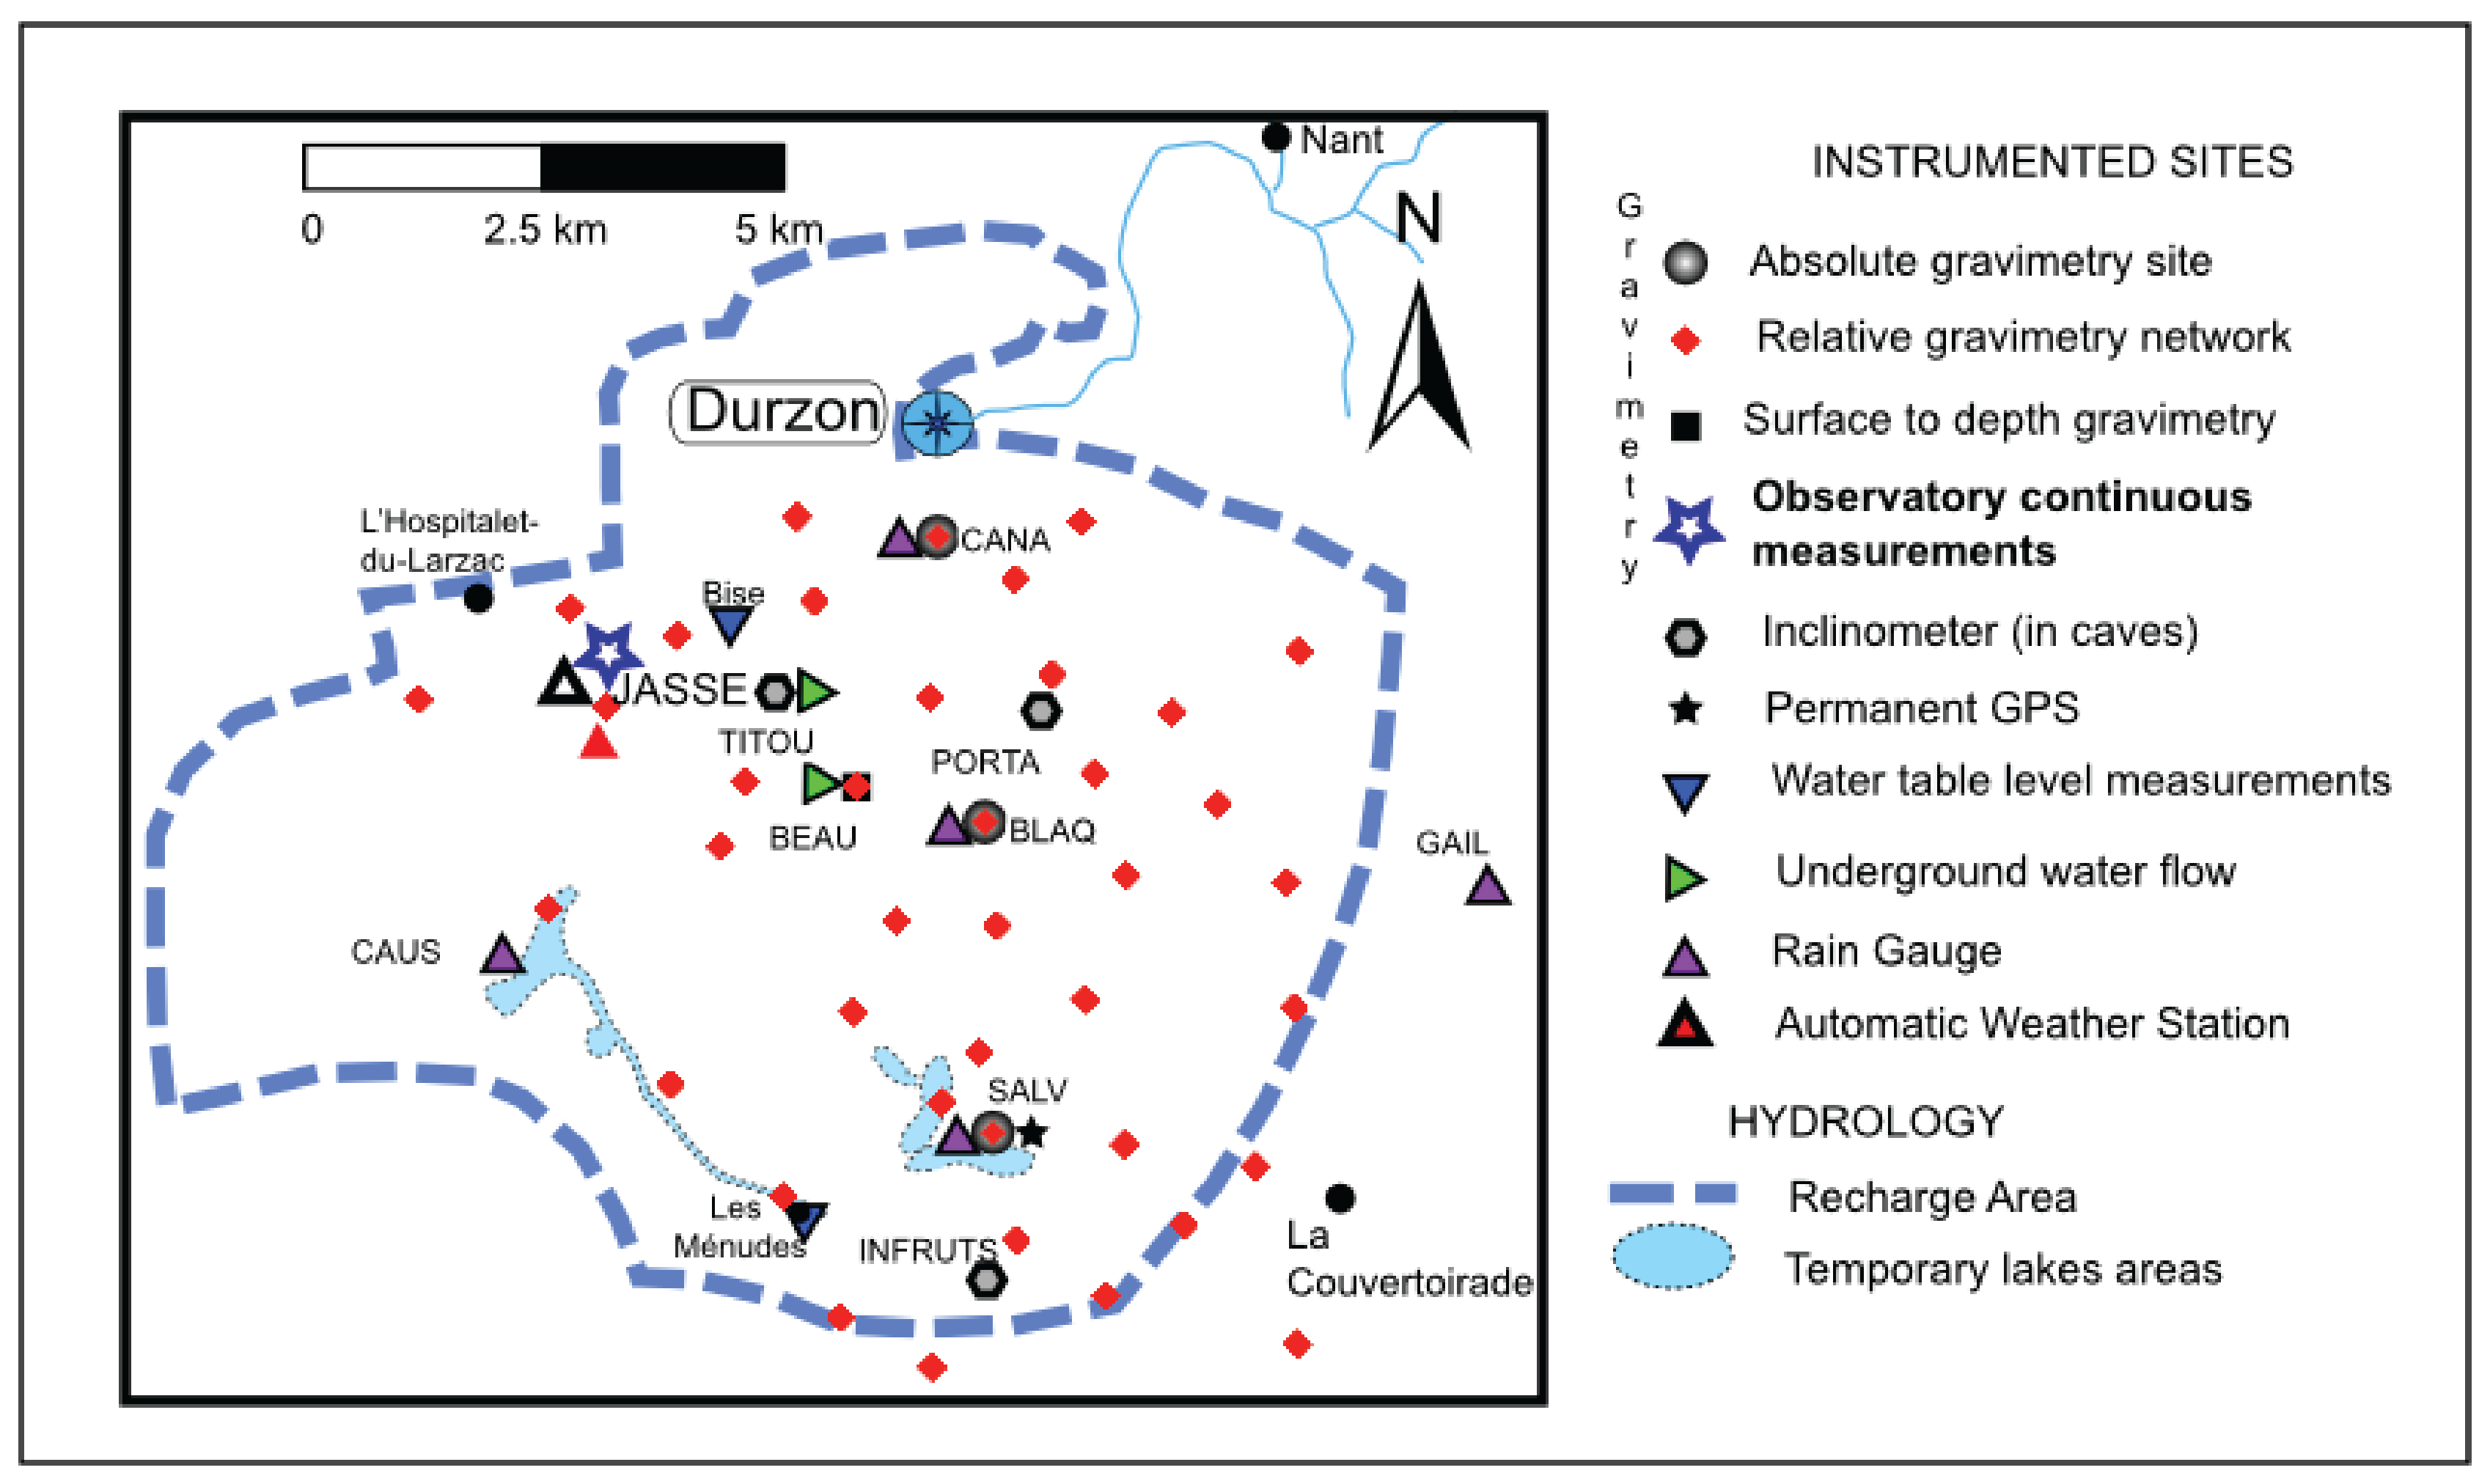 "Figure 1: All temporary and permanent observation sites, on the ground or in situ: rain gauges (purple triangles); pressure sensors (blue triangles: Menudes borehole -40 m; Bise sinkhole -150 m), meteorological stations (PTU) and GPS receivers (SALV), water-stage recorder (Durzon Spring); the dotted circle indicates the approximate position of the gravimetric and geophysical experiments proposed for the Hydrokarst G2 Project (ANR ""White Program 2008"" Project). Relative and absolute gravimetric observations: CG5, FG5, and Gphone; SALV, BLAQ, and CANA stations; CG5 in situ ""vertical"" differential gravimetric observations (Baumelles sinkhole); CG5 and A10 relative gravimetric network (red dots); tiltmeter observations (gray circles: Titou, Infruts, and Portalerie (PORTA) sinkholes); in situ flowmeters (Titou and Baumelle sinkholes)."